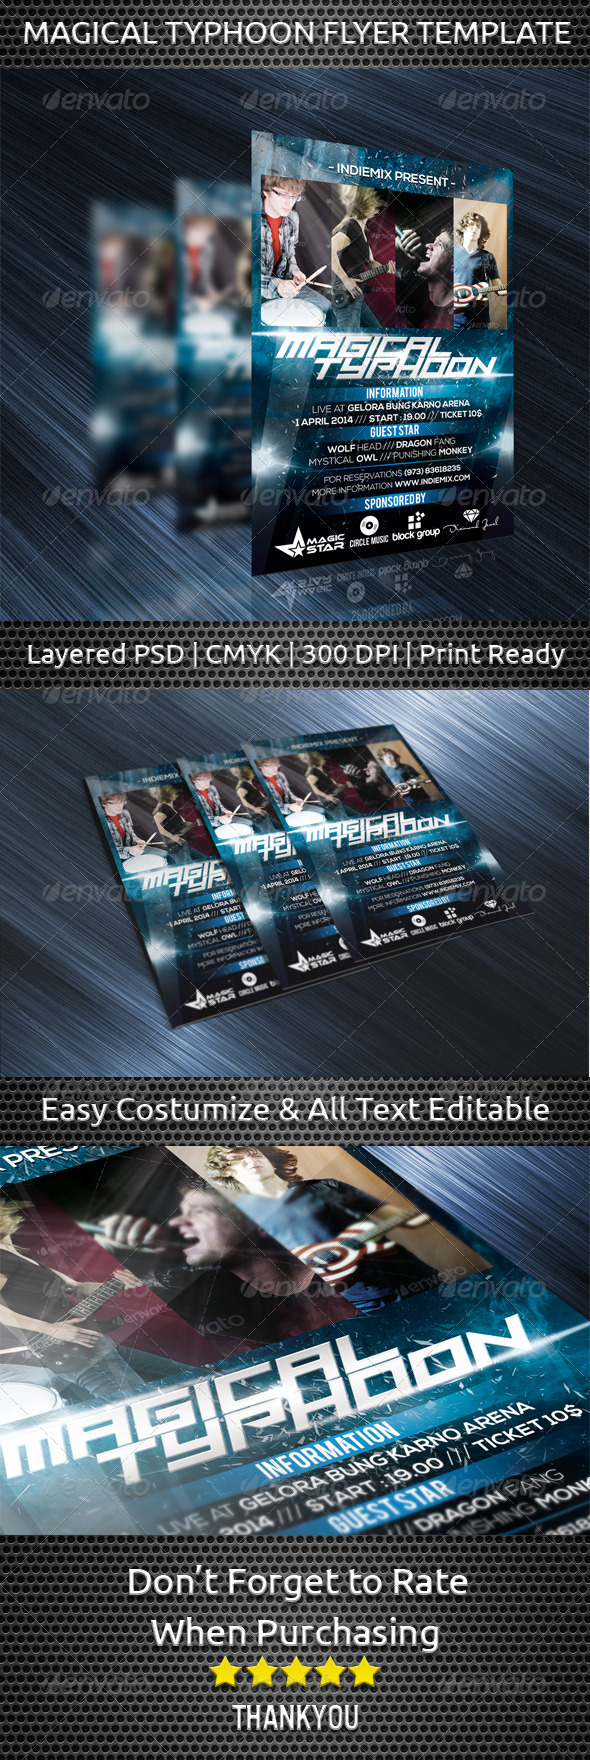 GraphicRiver Magical Typhoon Flyer Template 7240770